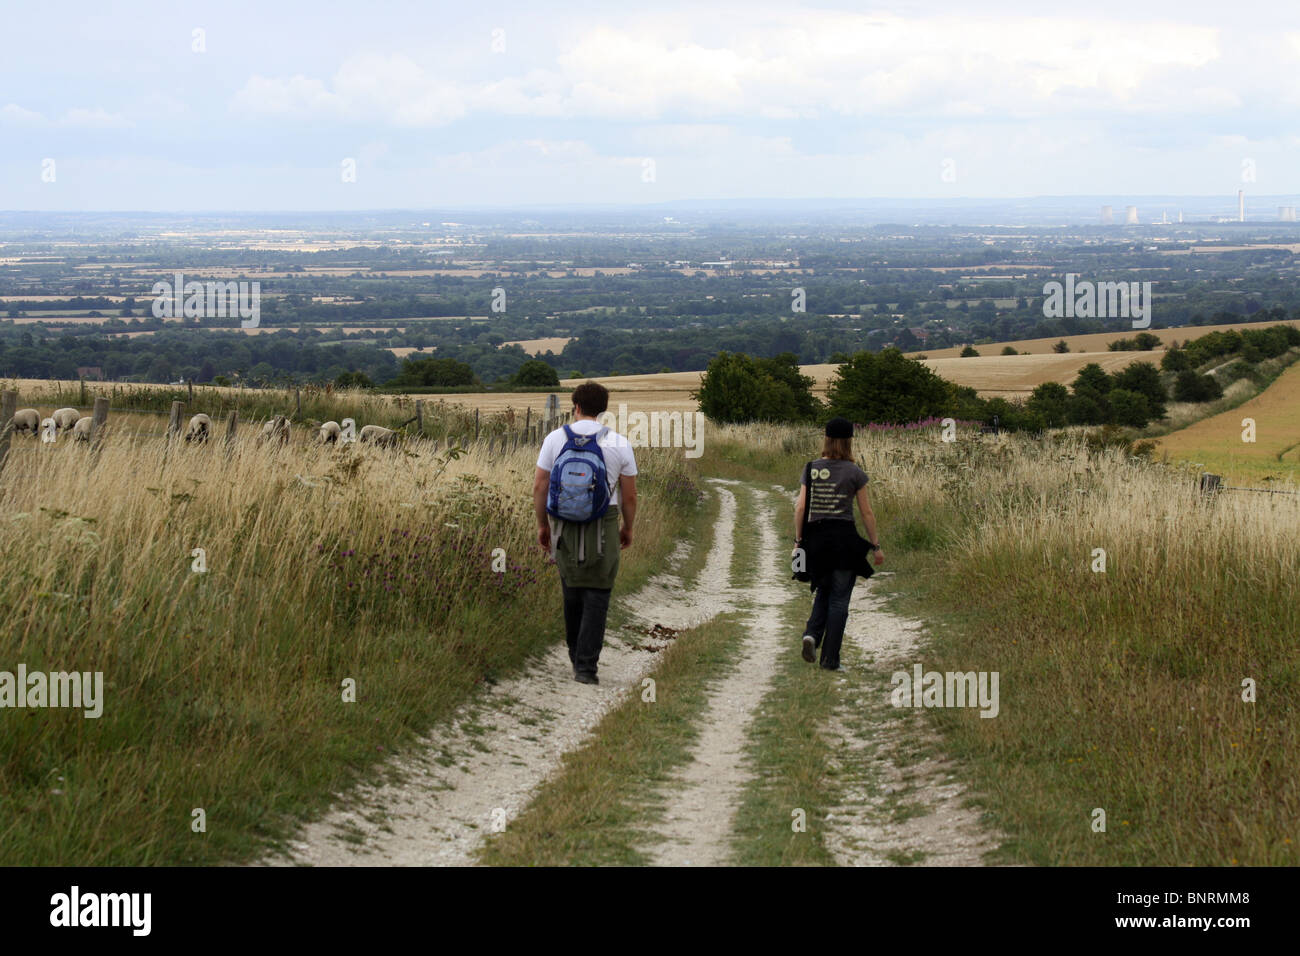 Two people walking along the White Horse hill circular route in Oxfordshire, England - Stock Image